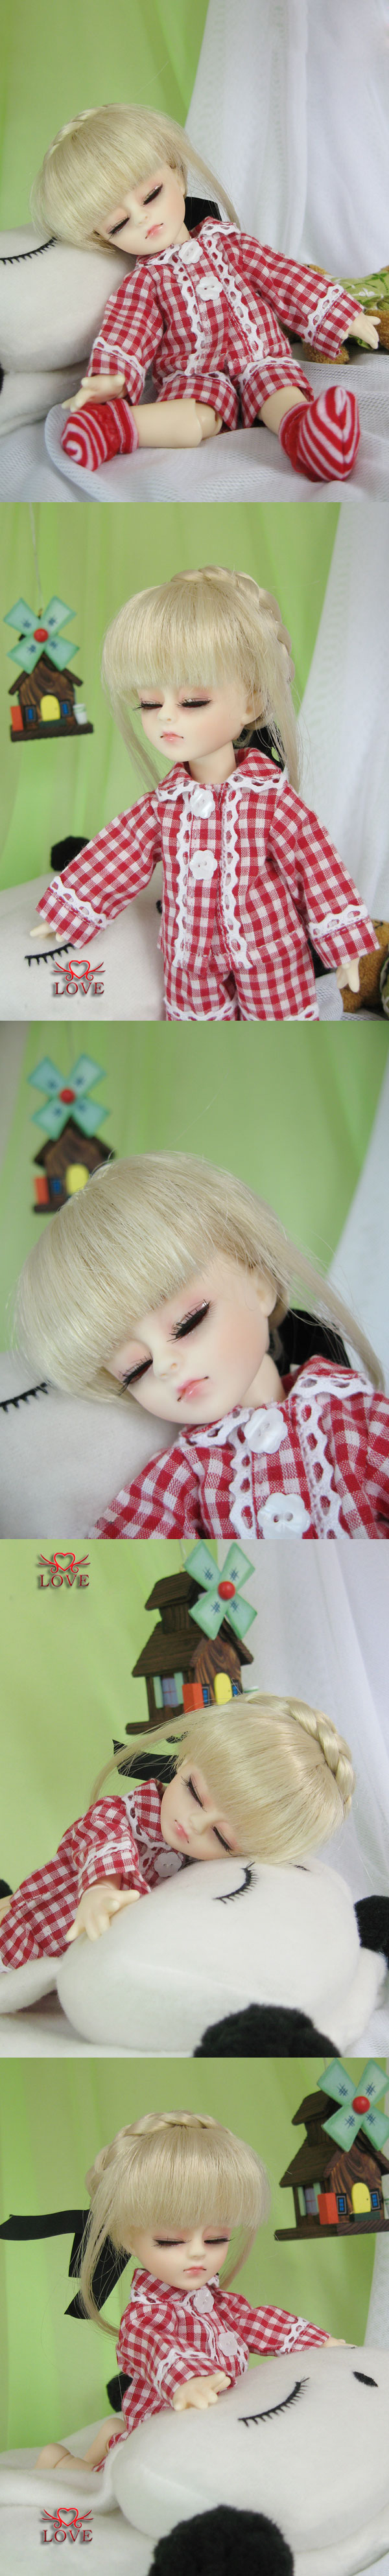 BJD Jane 26.5cm Girl Ball-jointed doll